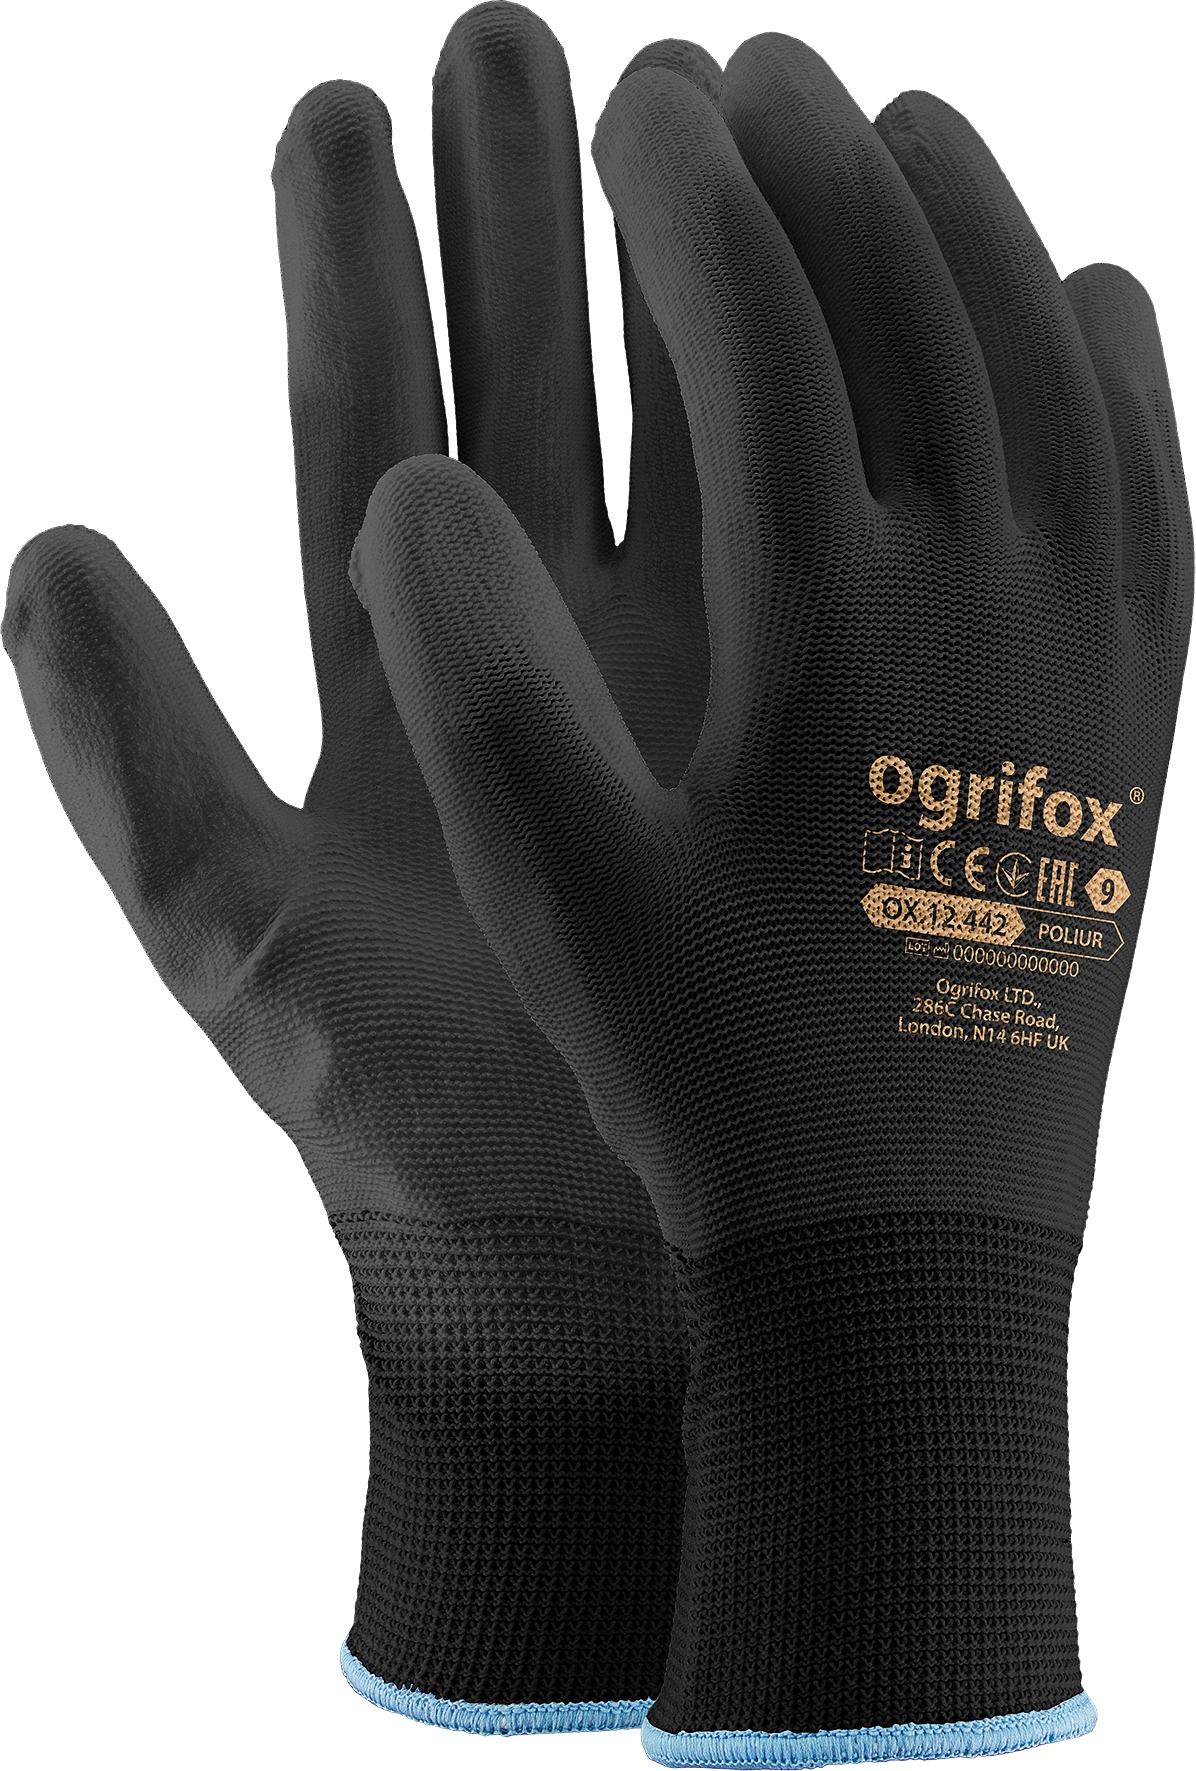 Перчатки Precision Work Gloves Manual 9